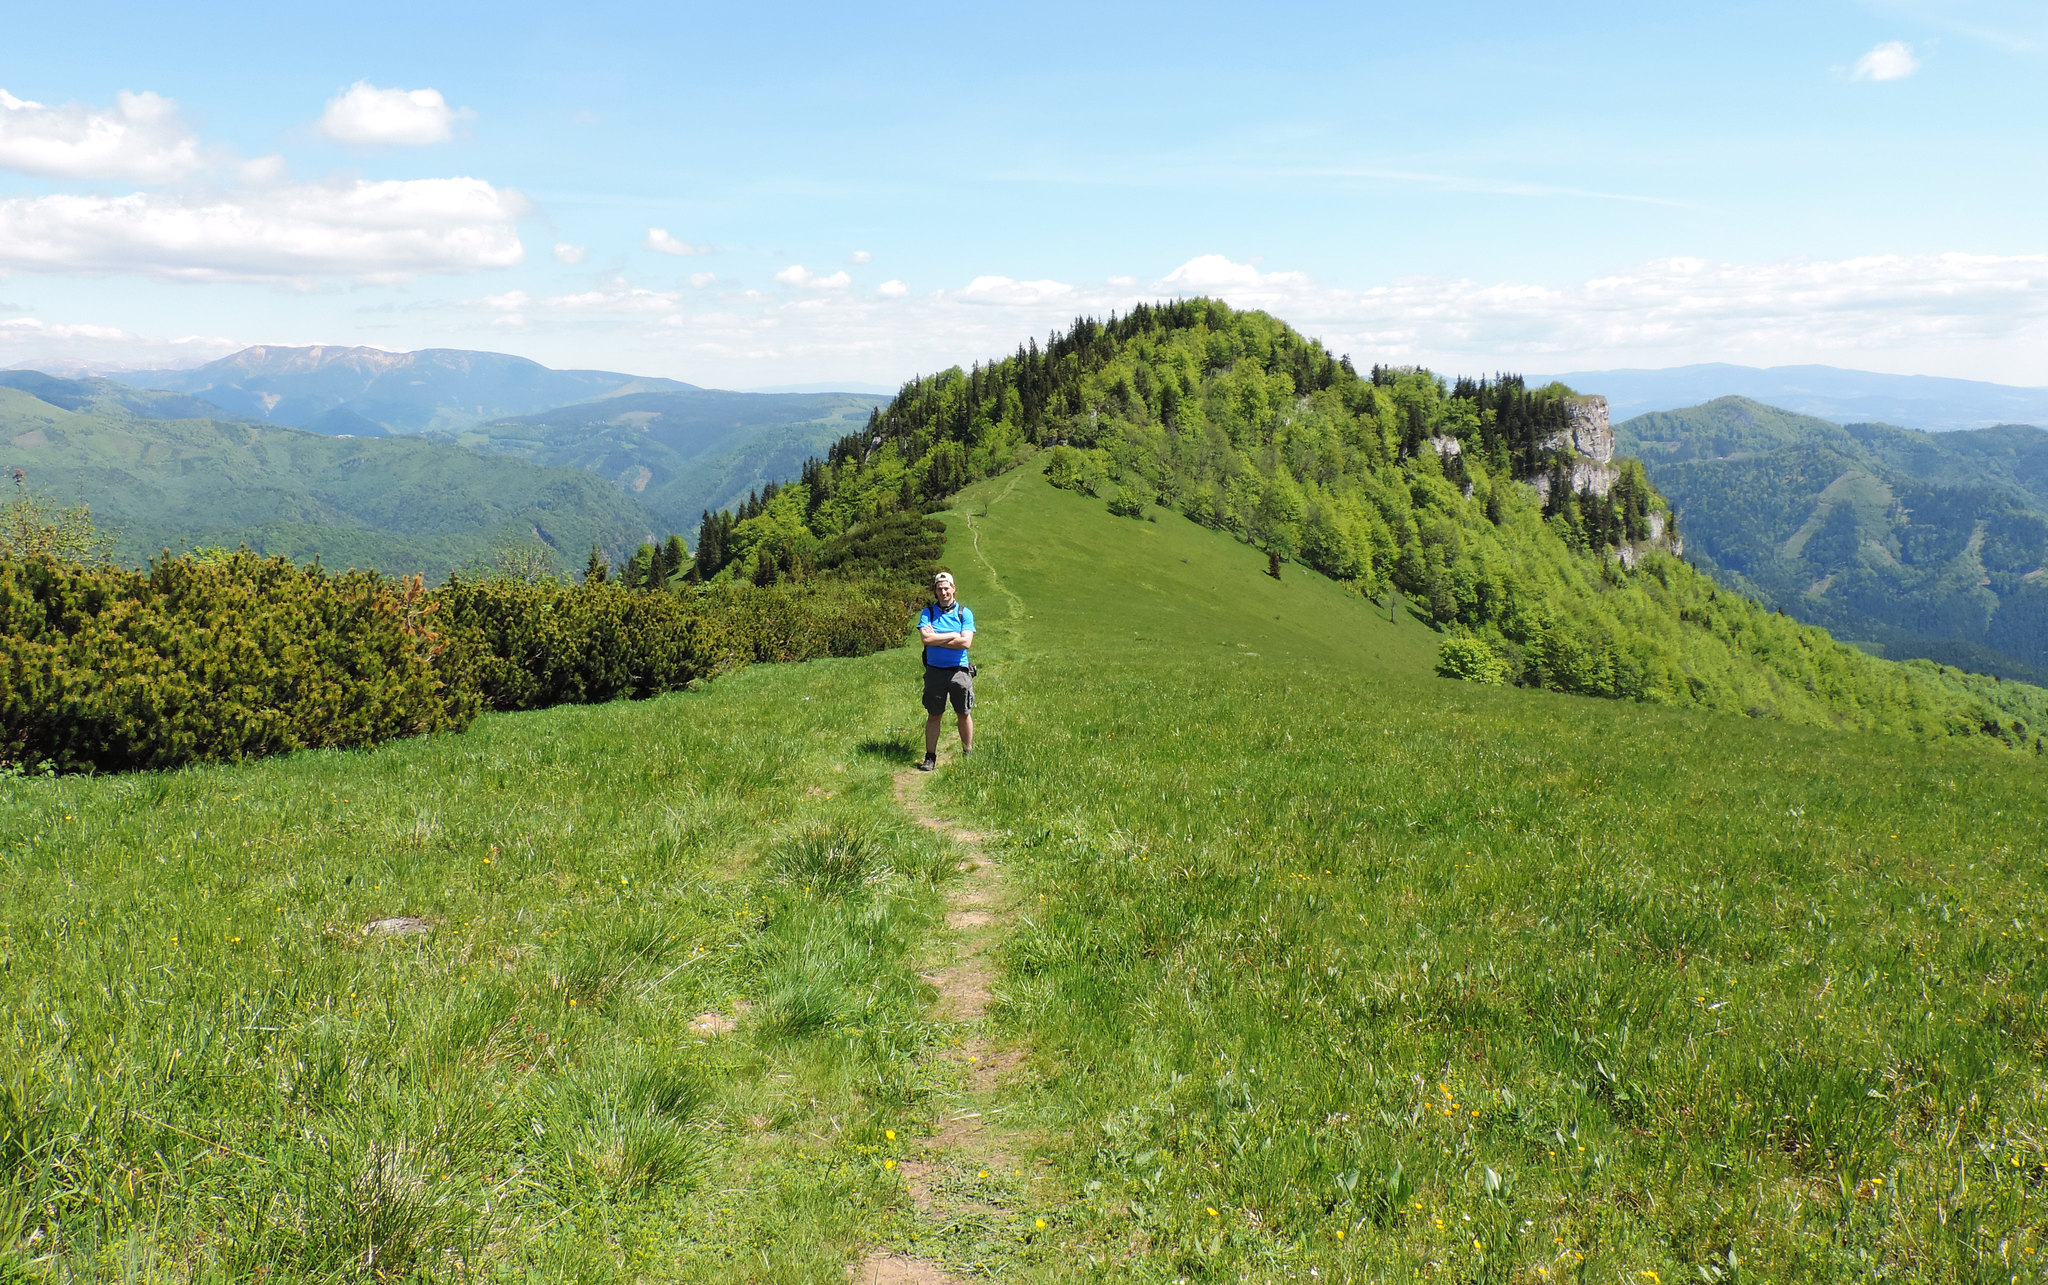 Majerova skala, Great Fatra National Park, Slovakia